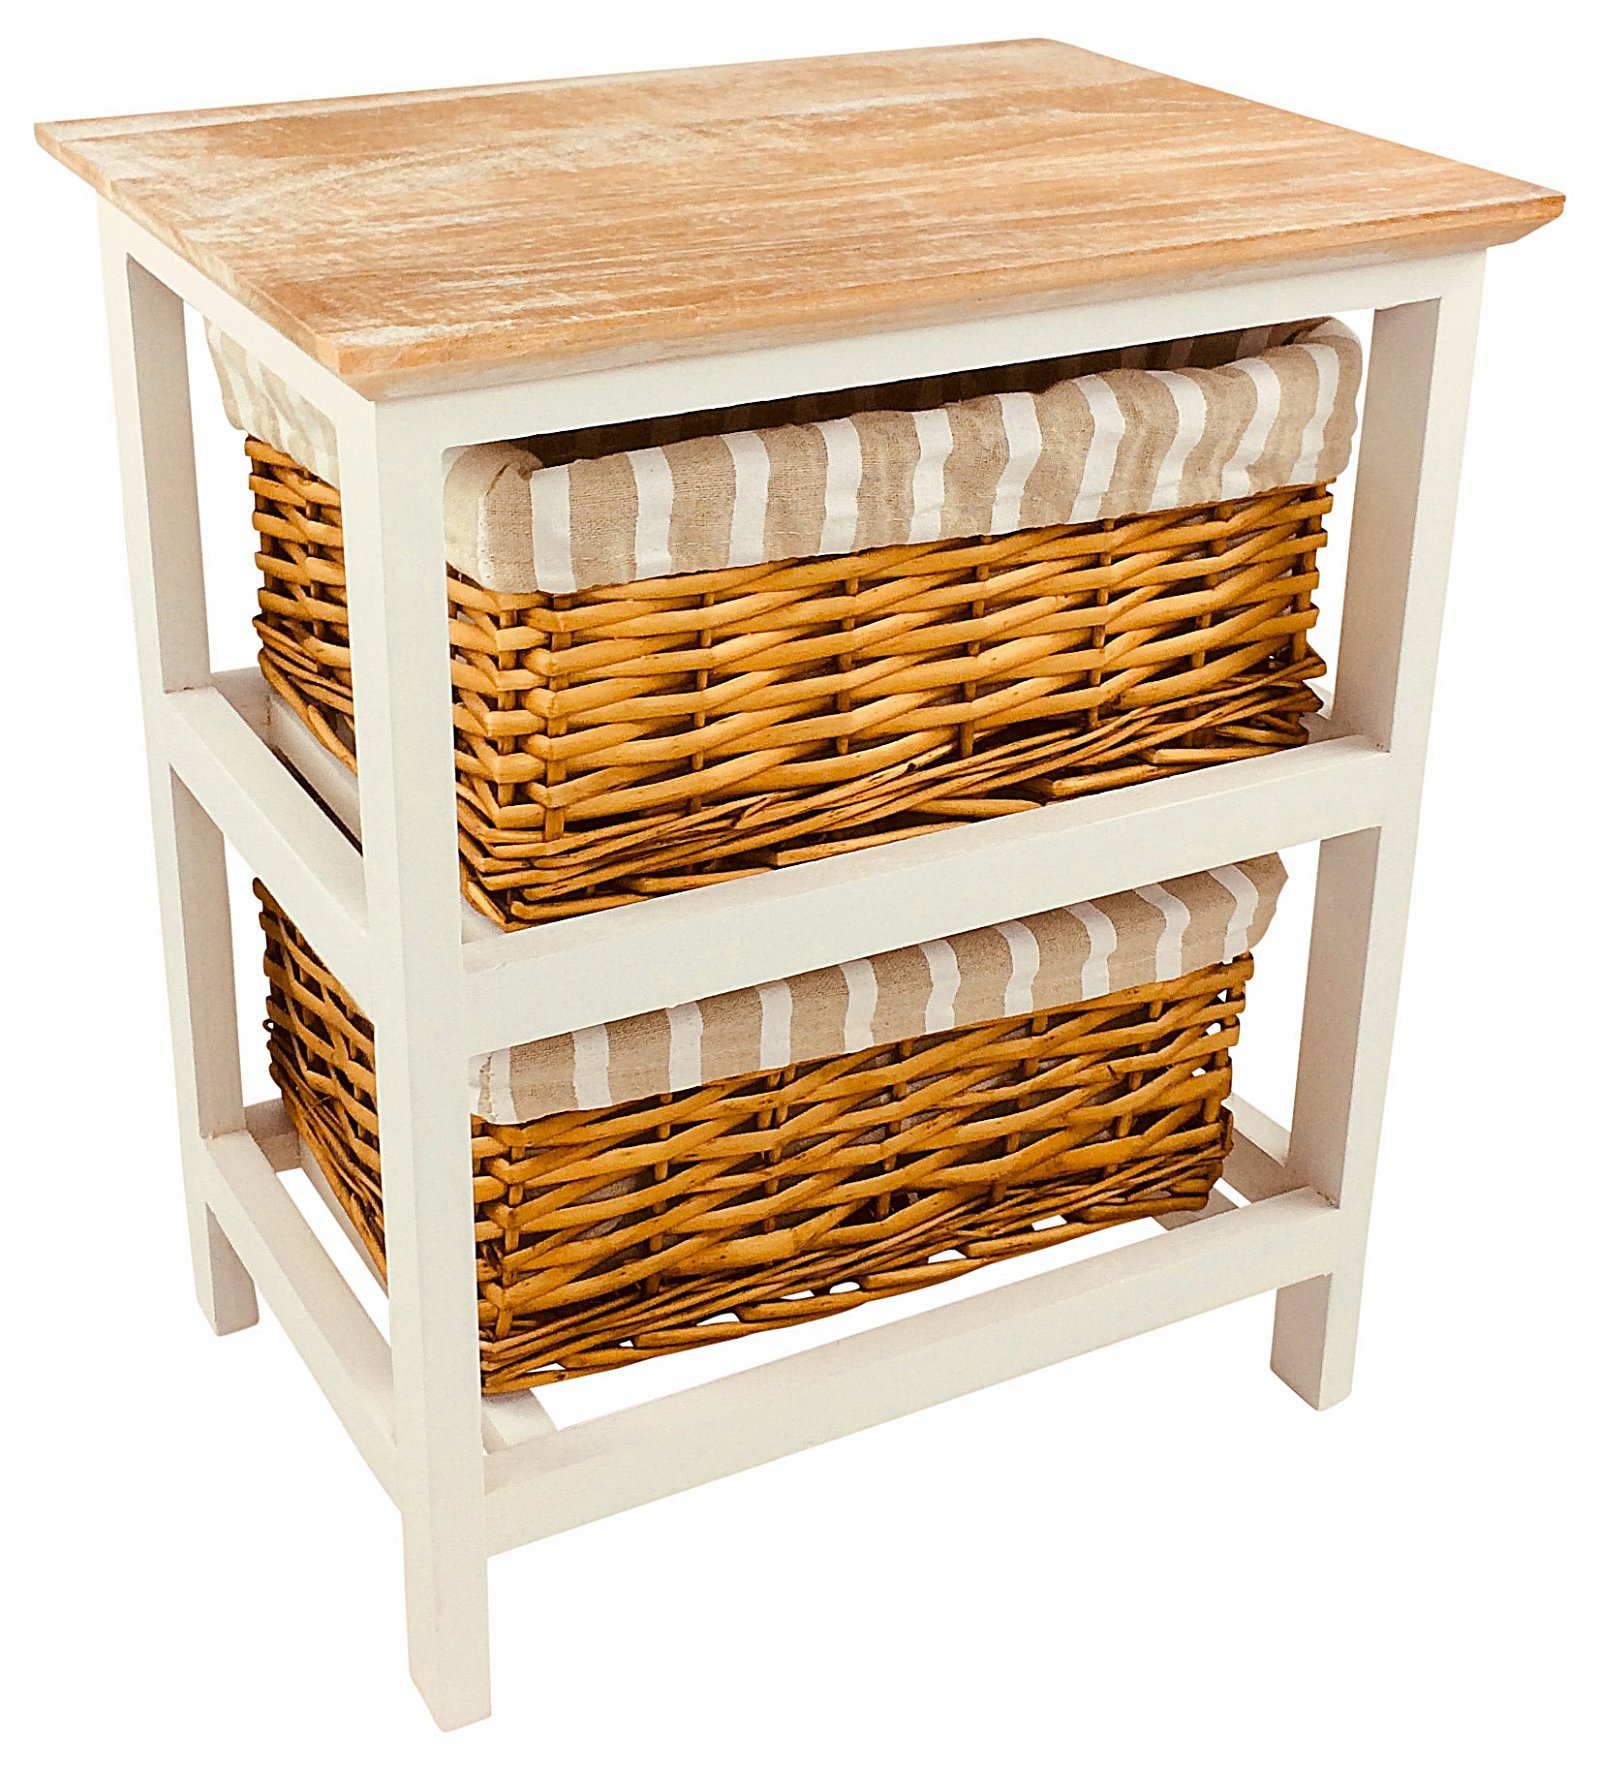 Wooden Storage Cabinet With 2 Baskets 44cm